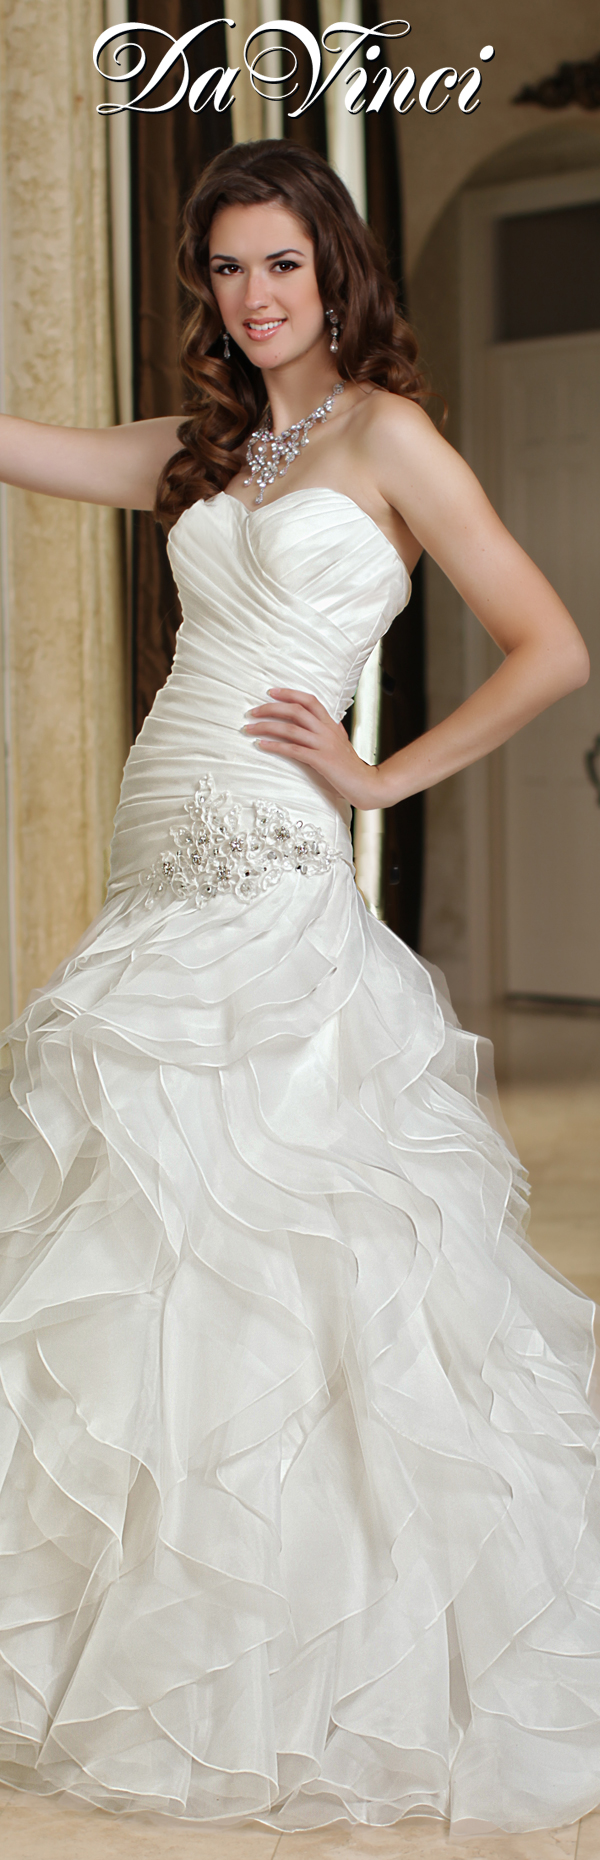 DaVinci Bridal Style # 50178 Organza gown with a pleated bodice consisting of a sweetheart strapless neckline. Dropped waist is accented with floral embroidered detail and leads to a full skirt of vertical ruffles. Lace up back. http://www.davincibridal.com/